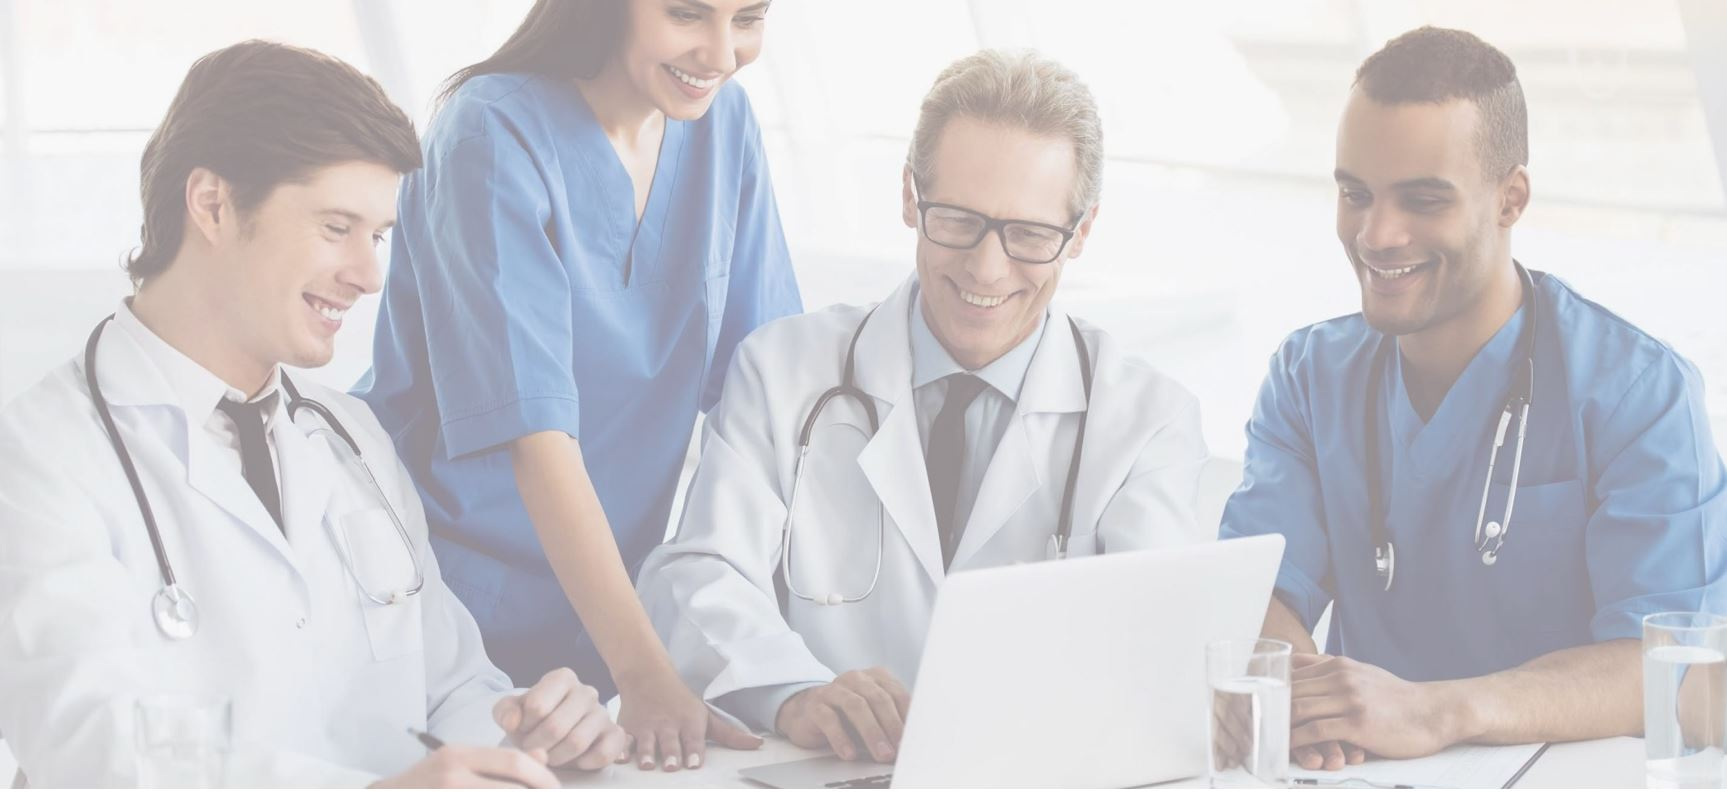 Microsoft Office Whitepaper group of physicians image